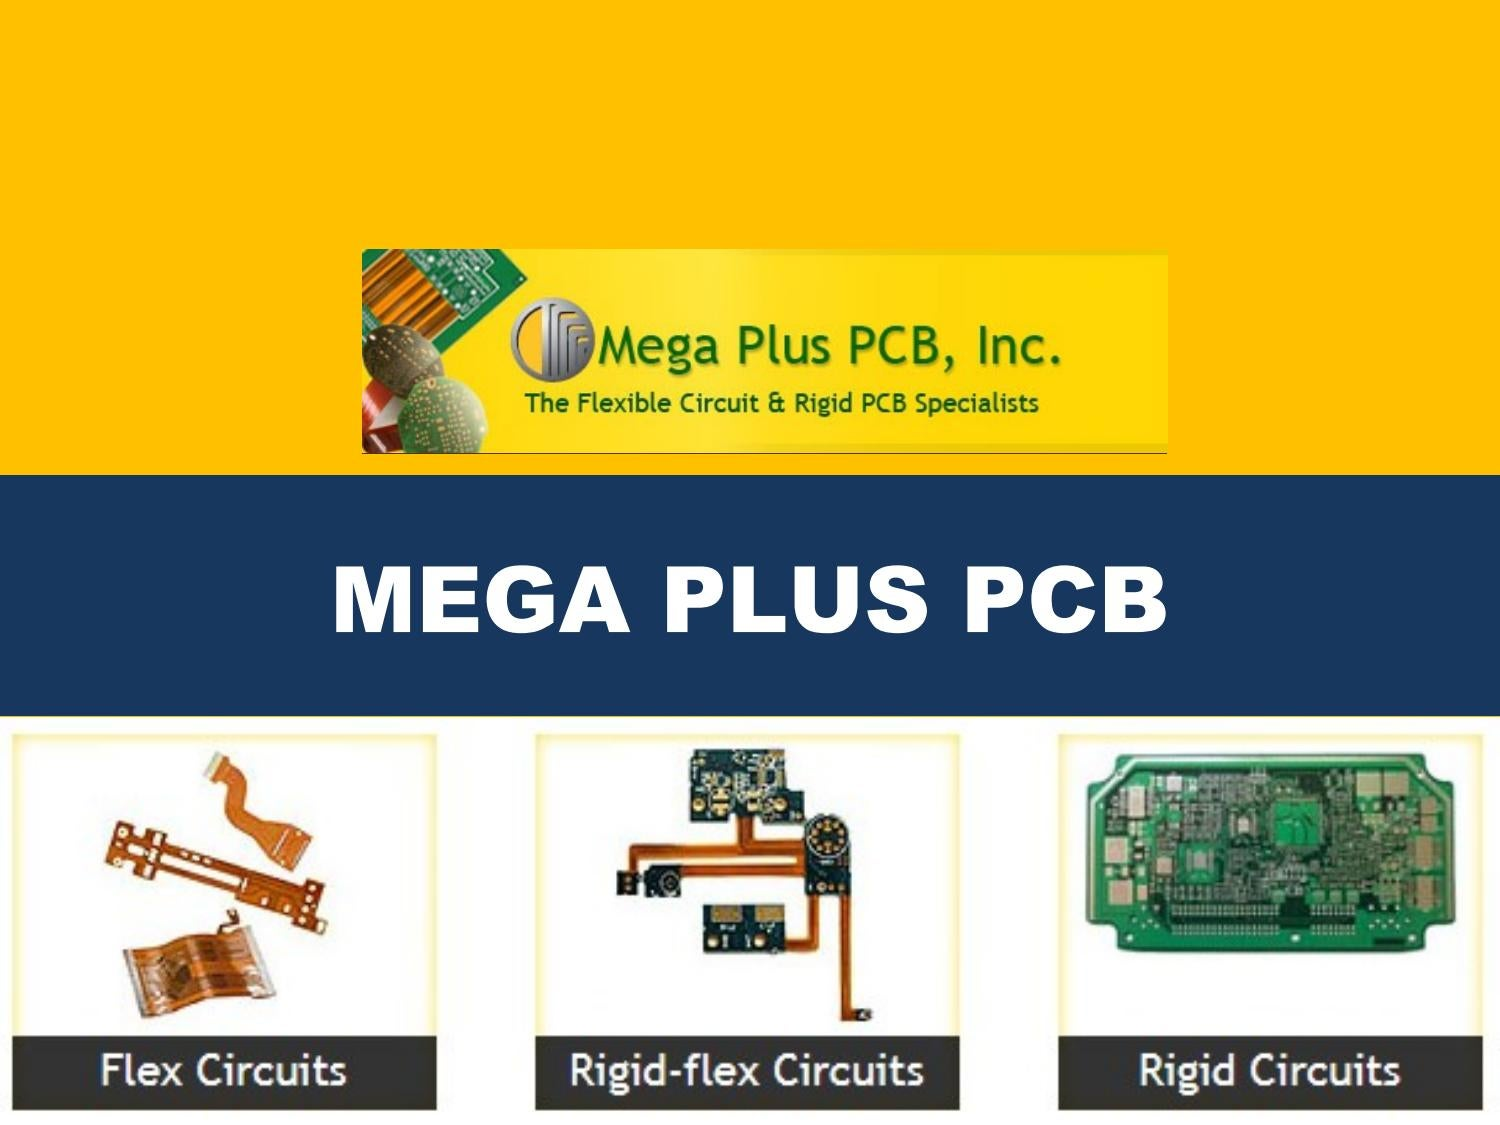 Types And Features Of Flexible Circuits By Megapluspcb Issuu Circuit Boards Pcb Rigid Flex